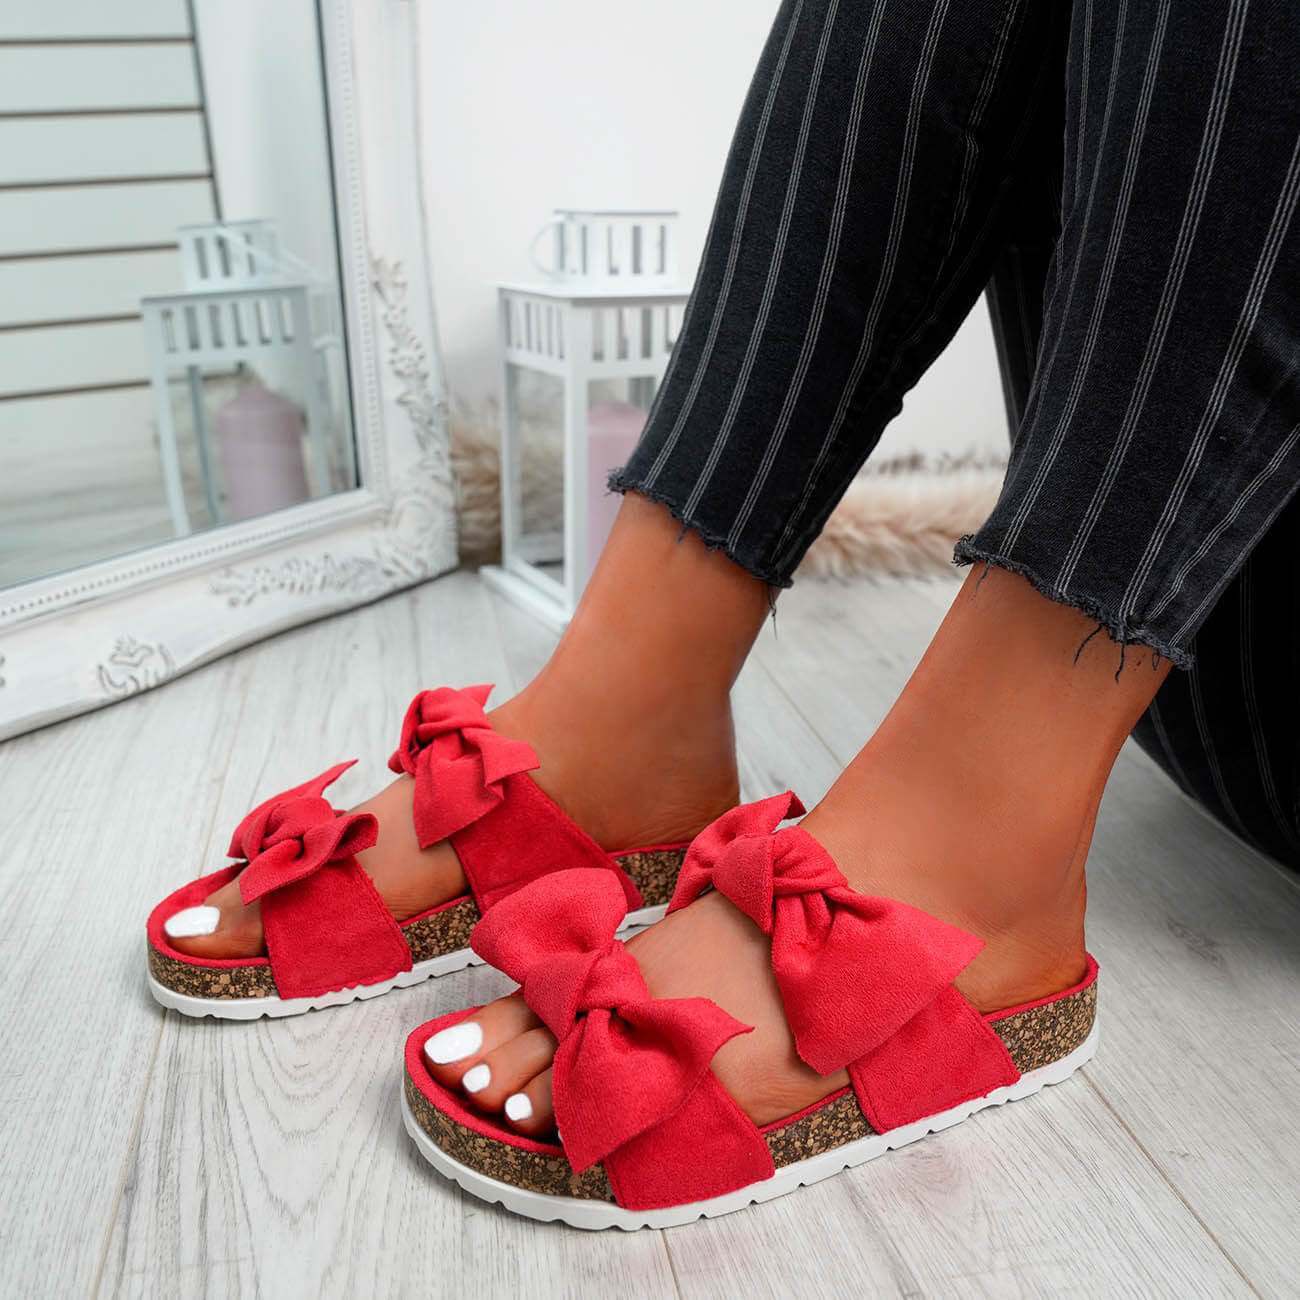 WOMENS-LADIES-PEEP-TOE-SLIP-ON-DOUBLE-BOW-FLAT-SANDALS-PARTY-CLUB-SUMMER-SHOES thumbnail 44